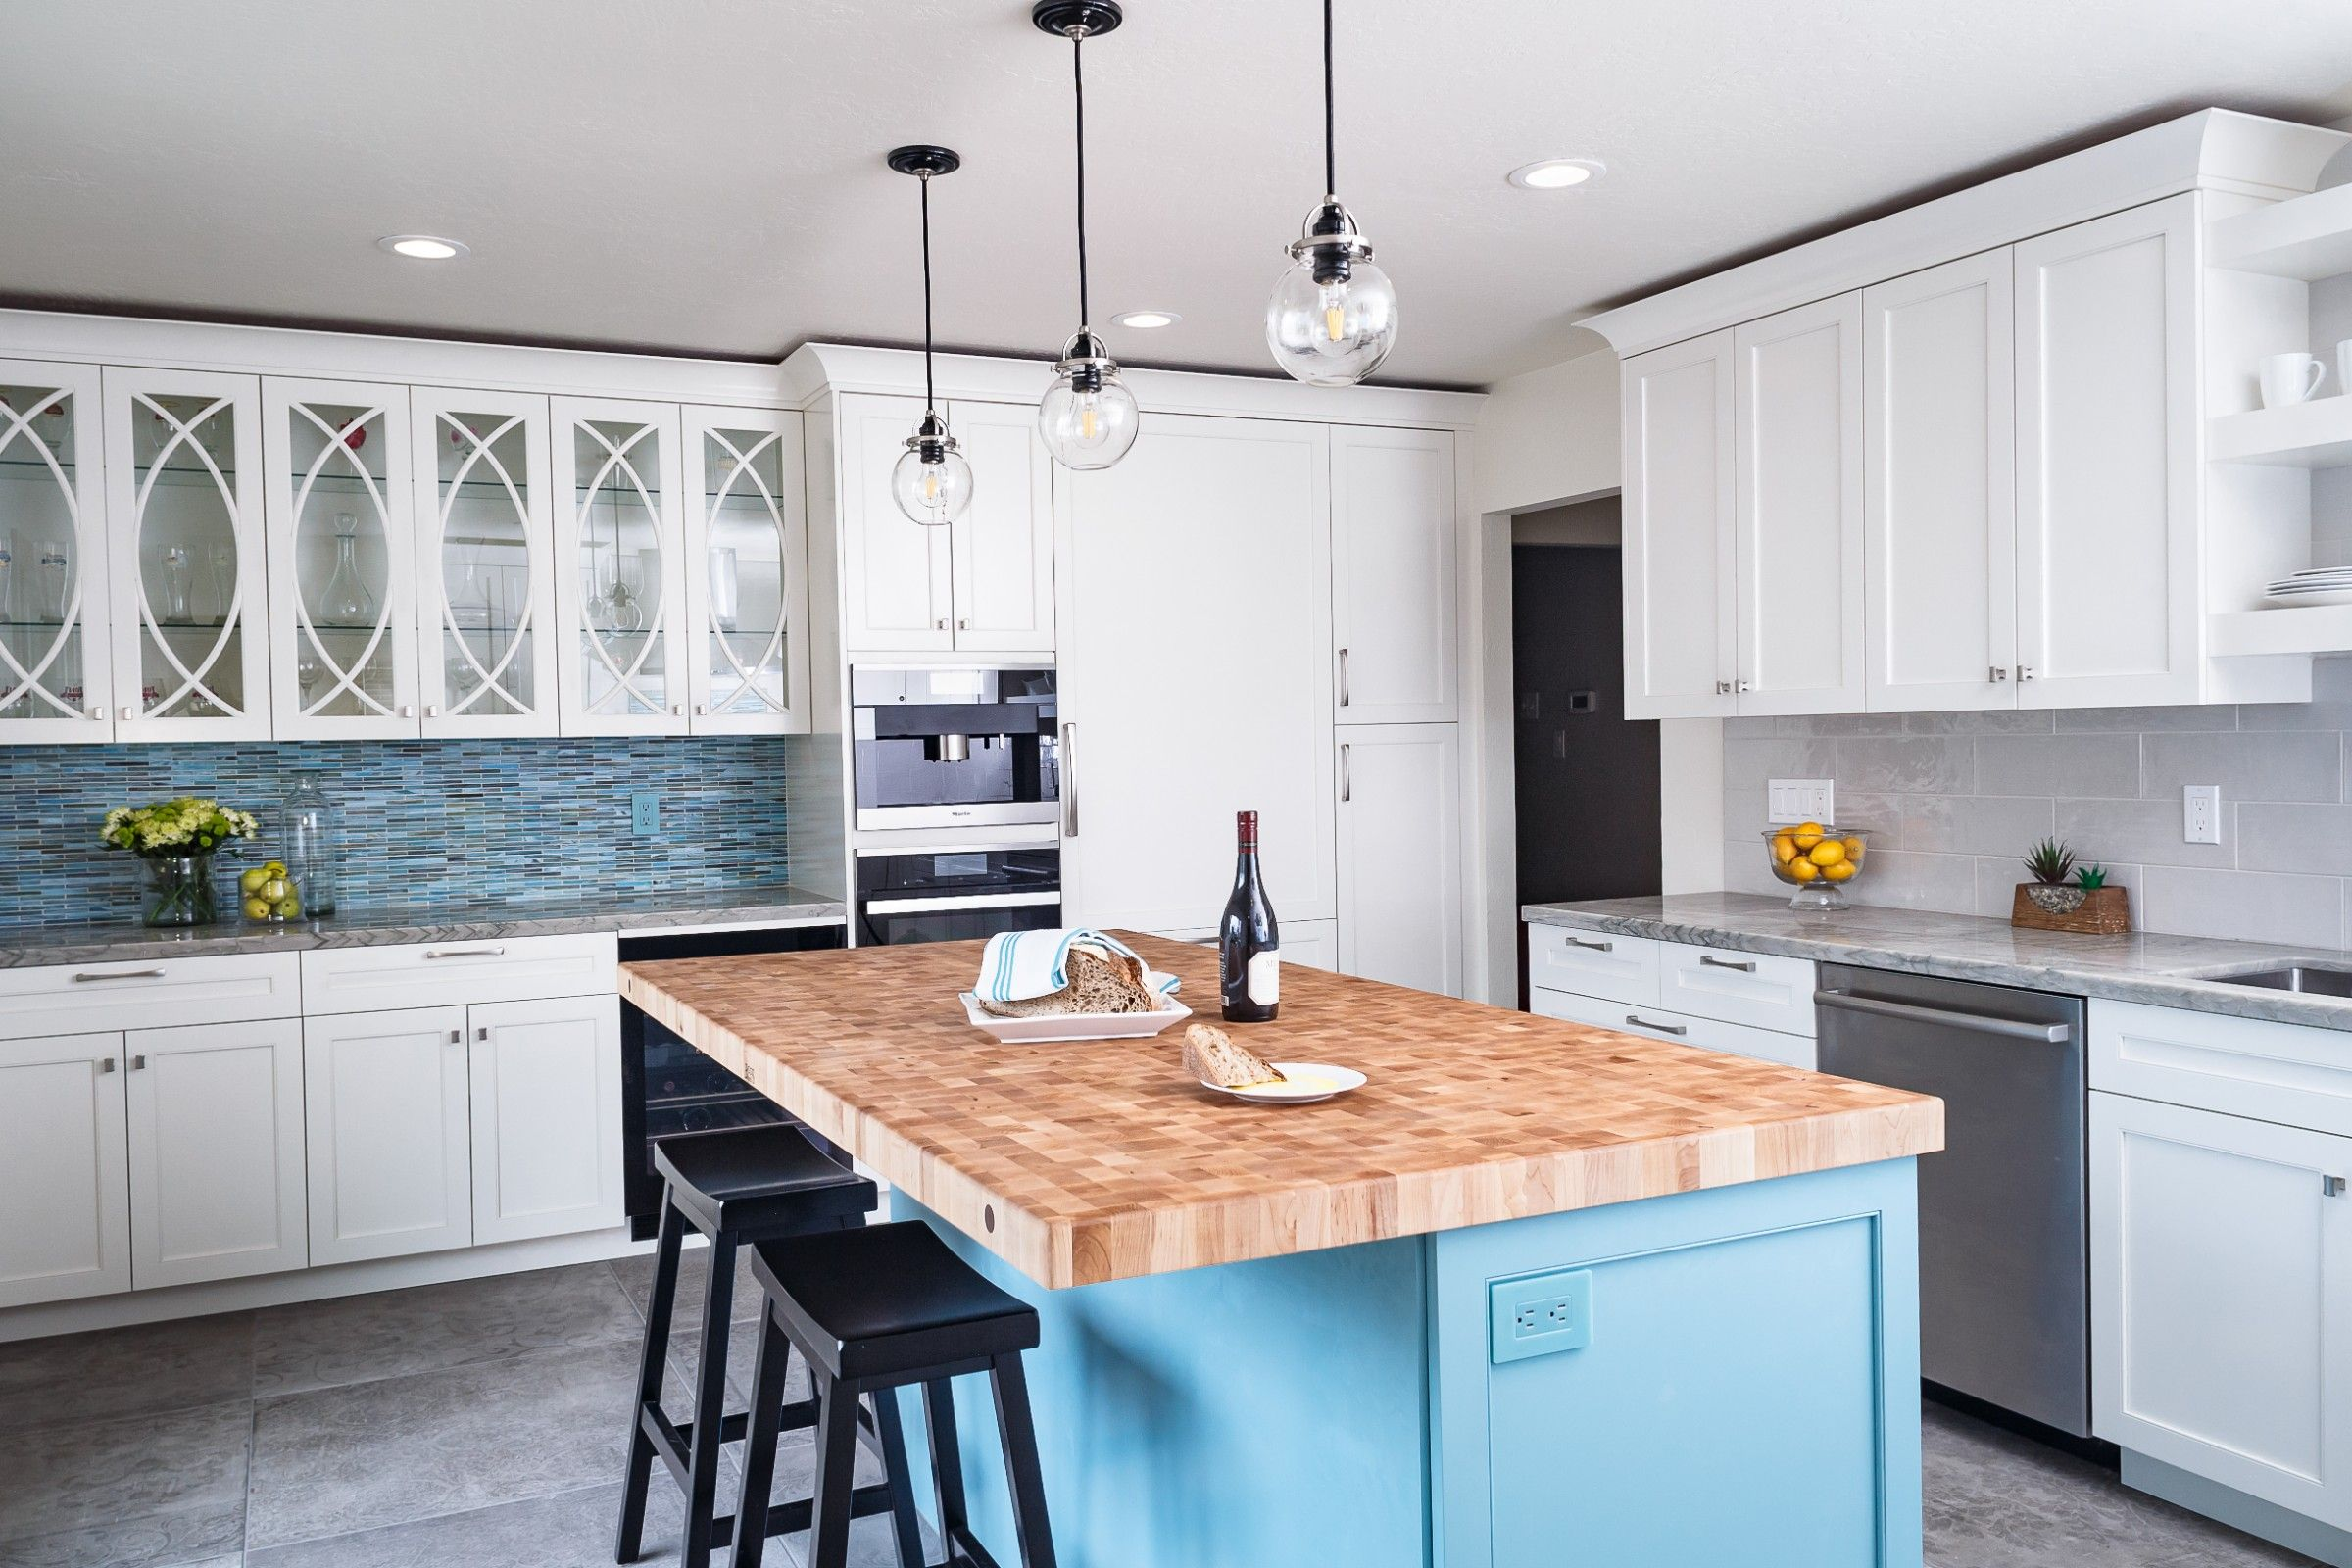 Kitchen Remodel Cost San Francisco Kitchen Remodel Estimate Small Kitchen Remodel Cost Kitchen Remodel Cost